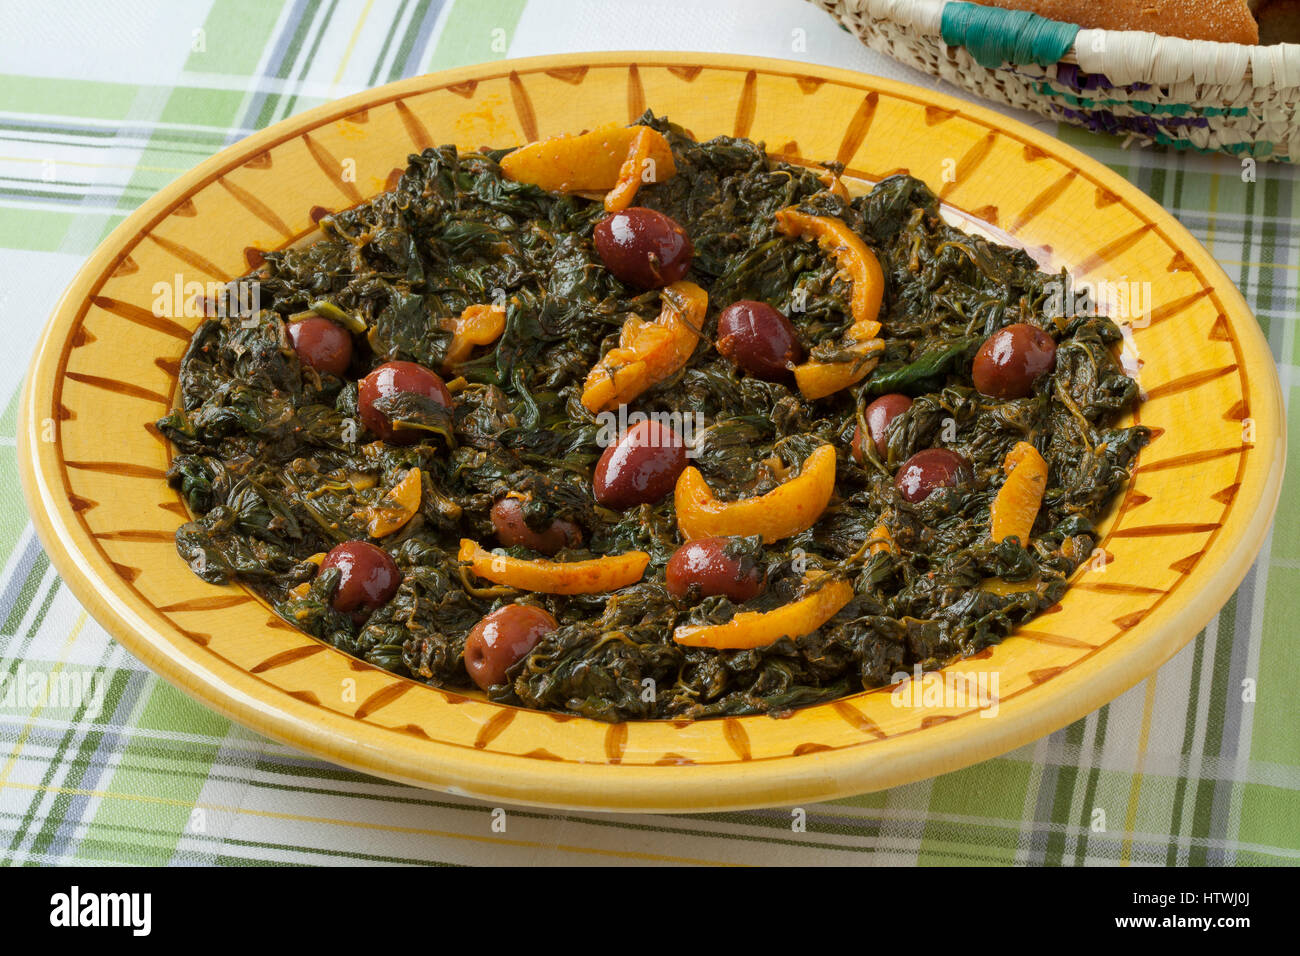 Traditional Moroccan dish with spinach, olives and preserved lemon - Stock Image